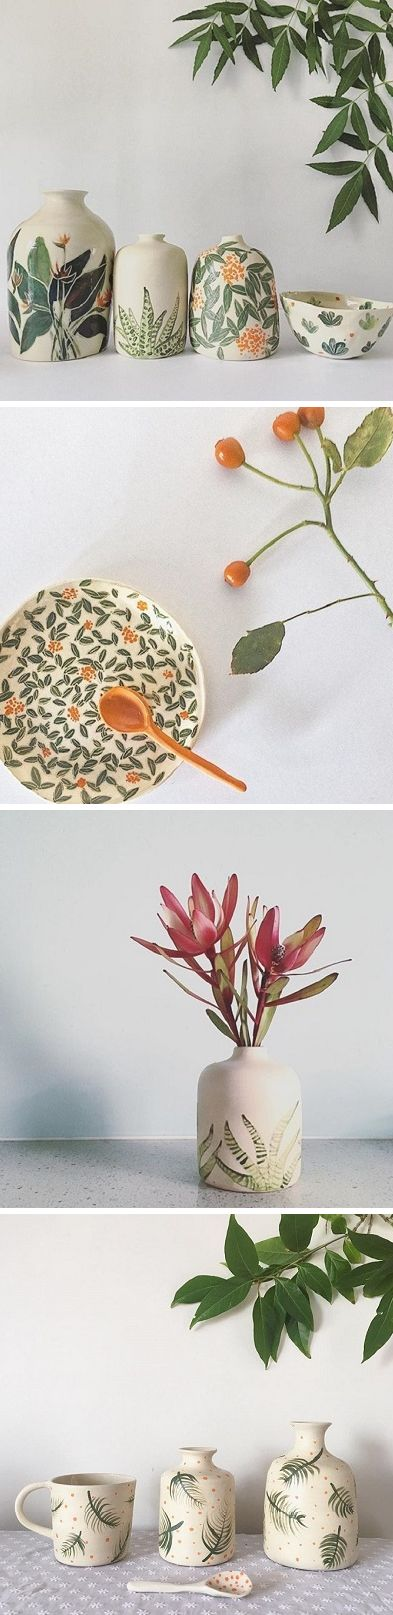 Ceramics by Ayesha Aggarwal